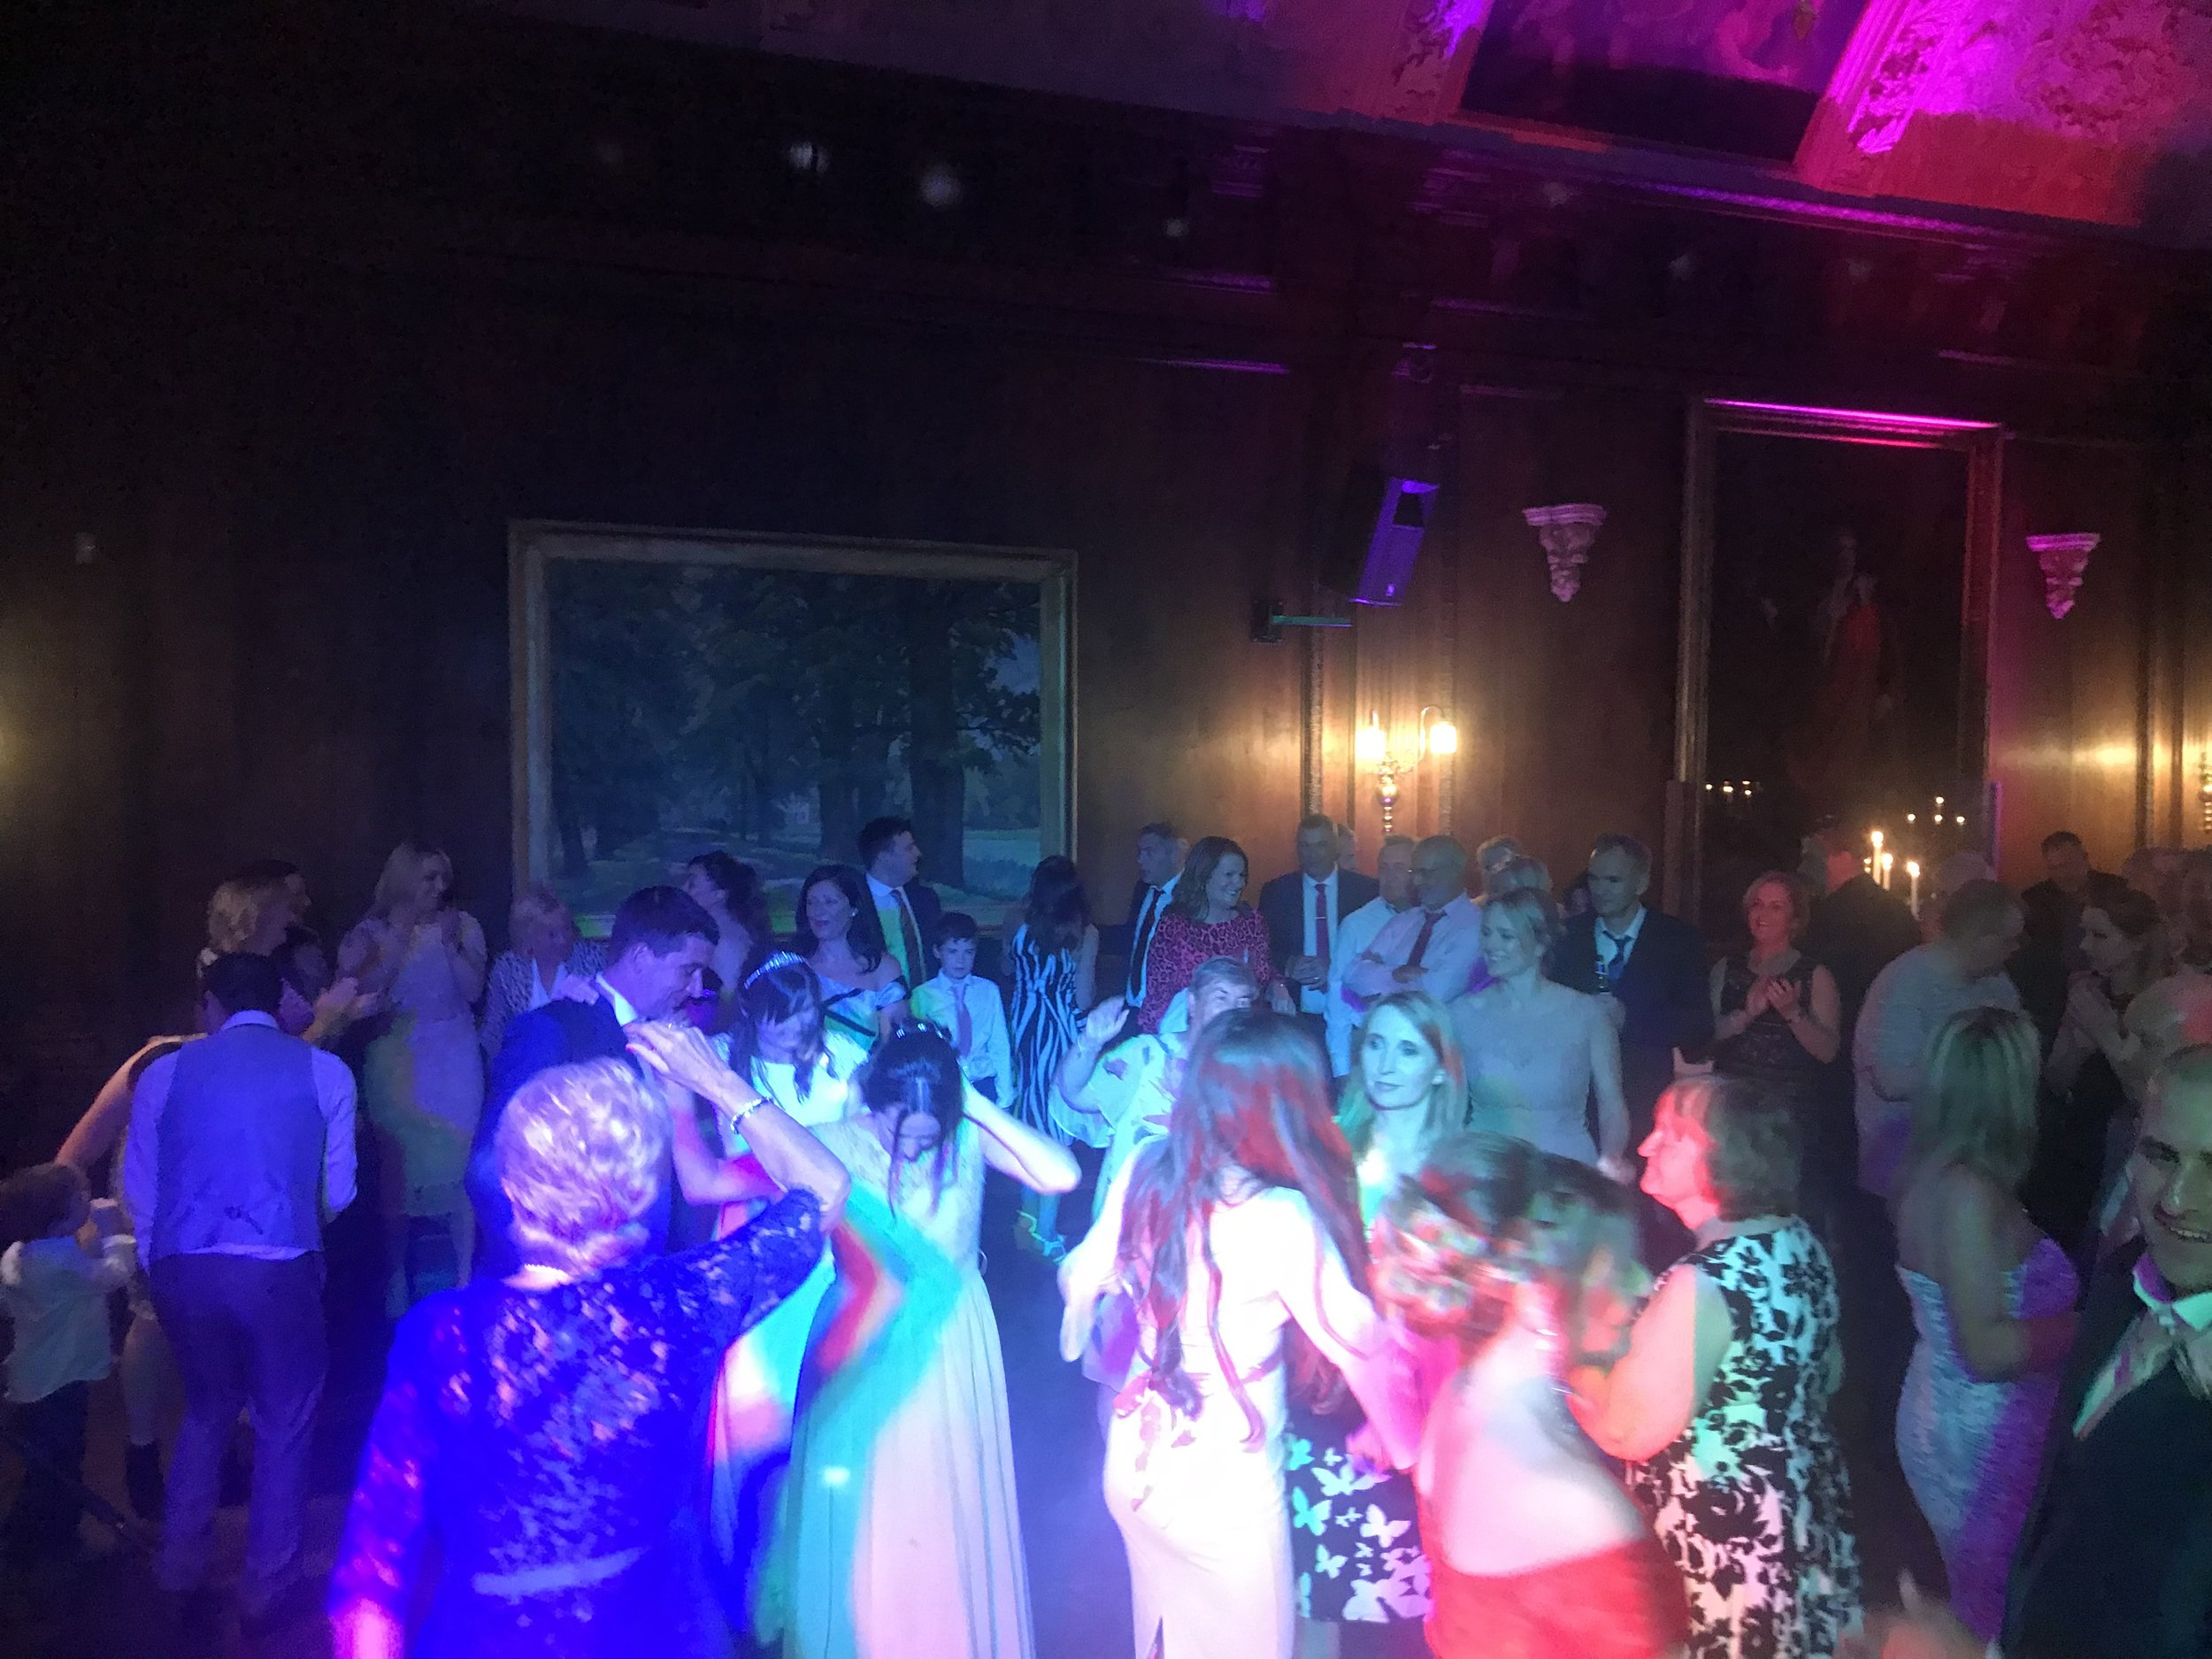 This photo was straight after a first dance at the amazing and beautiful Thornton manor